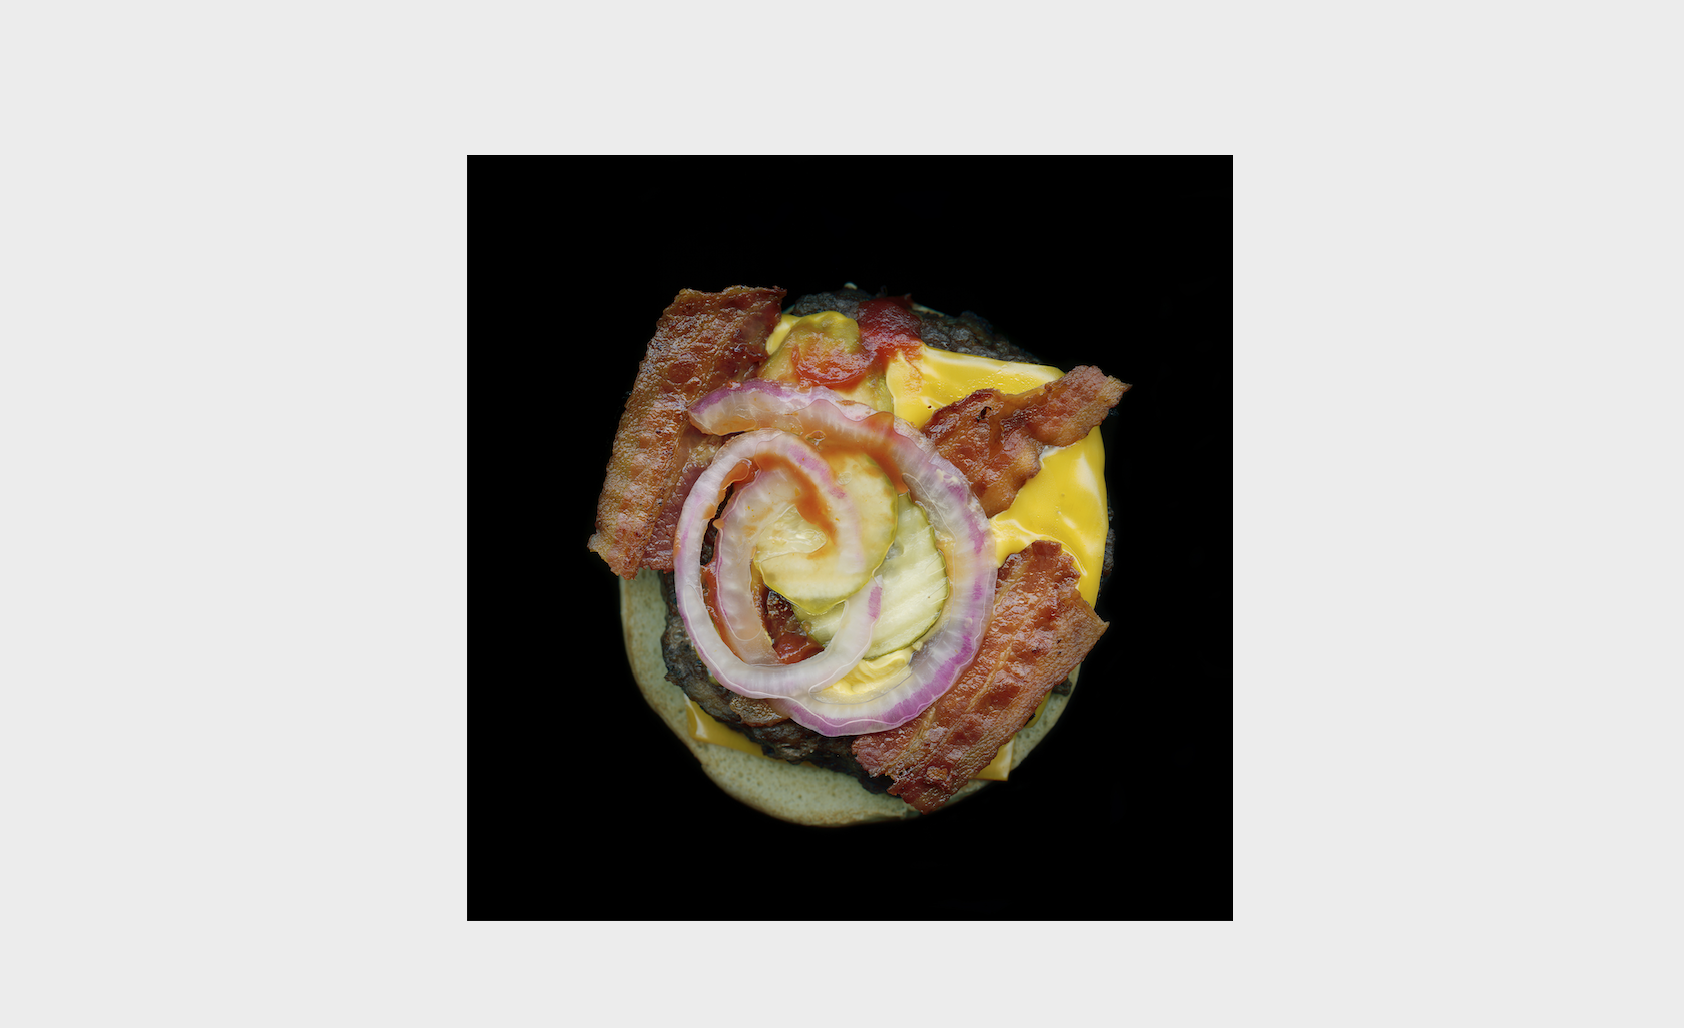 photo of an open face hamburger with bacon, onion, and cheese